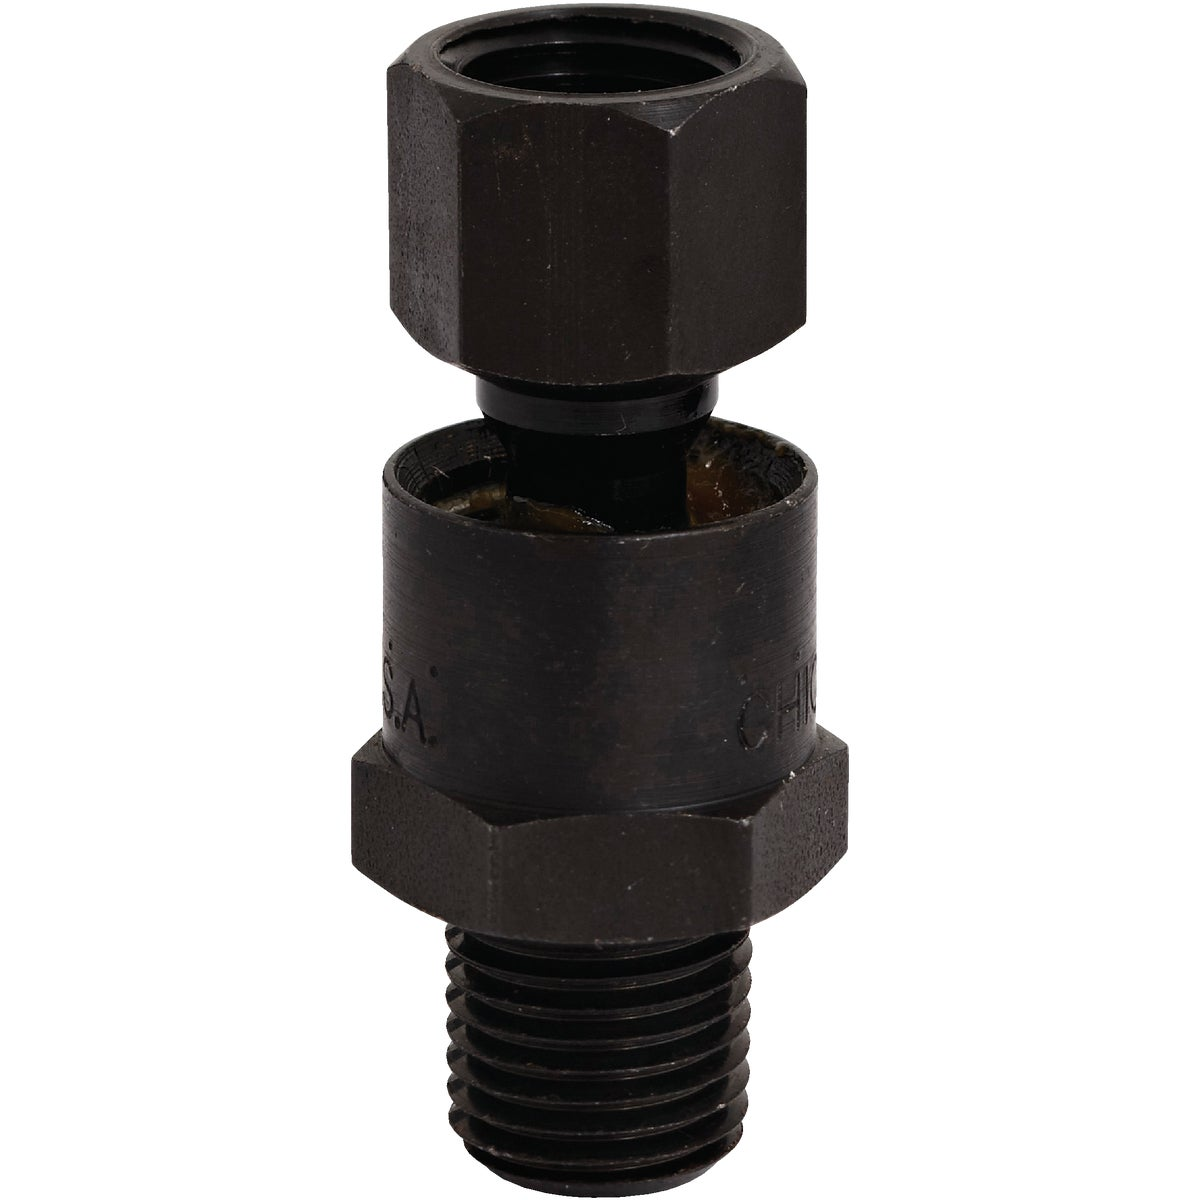 1/4MX1/4F SWIVEL END - S-659 by Milton Ind/ Incom